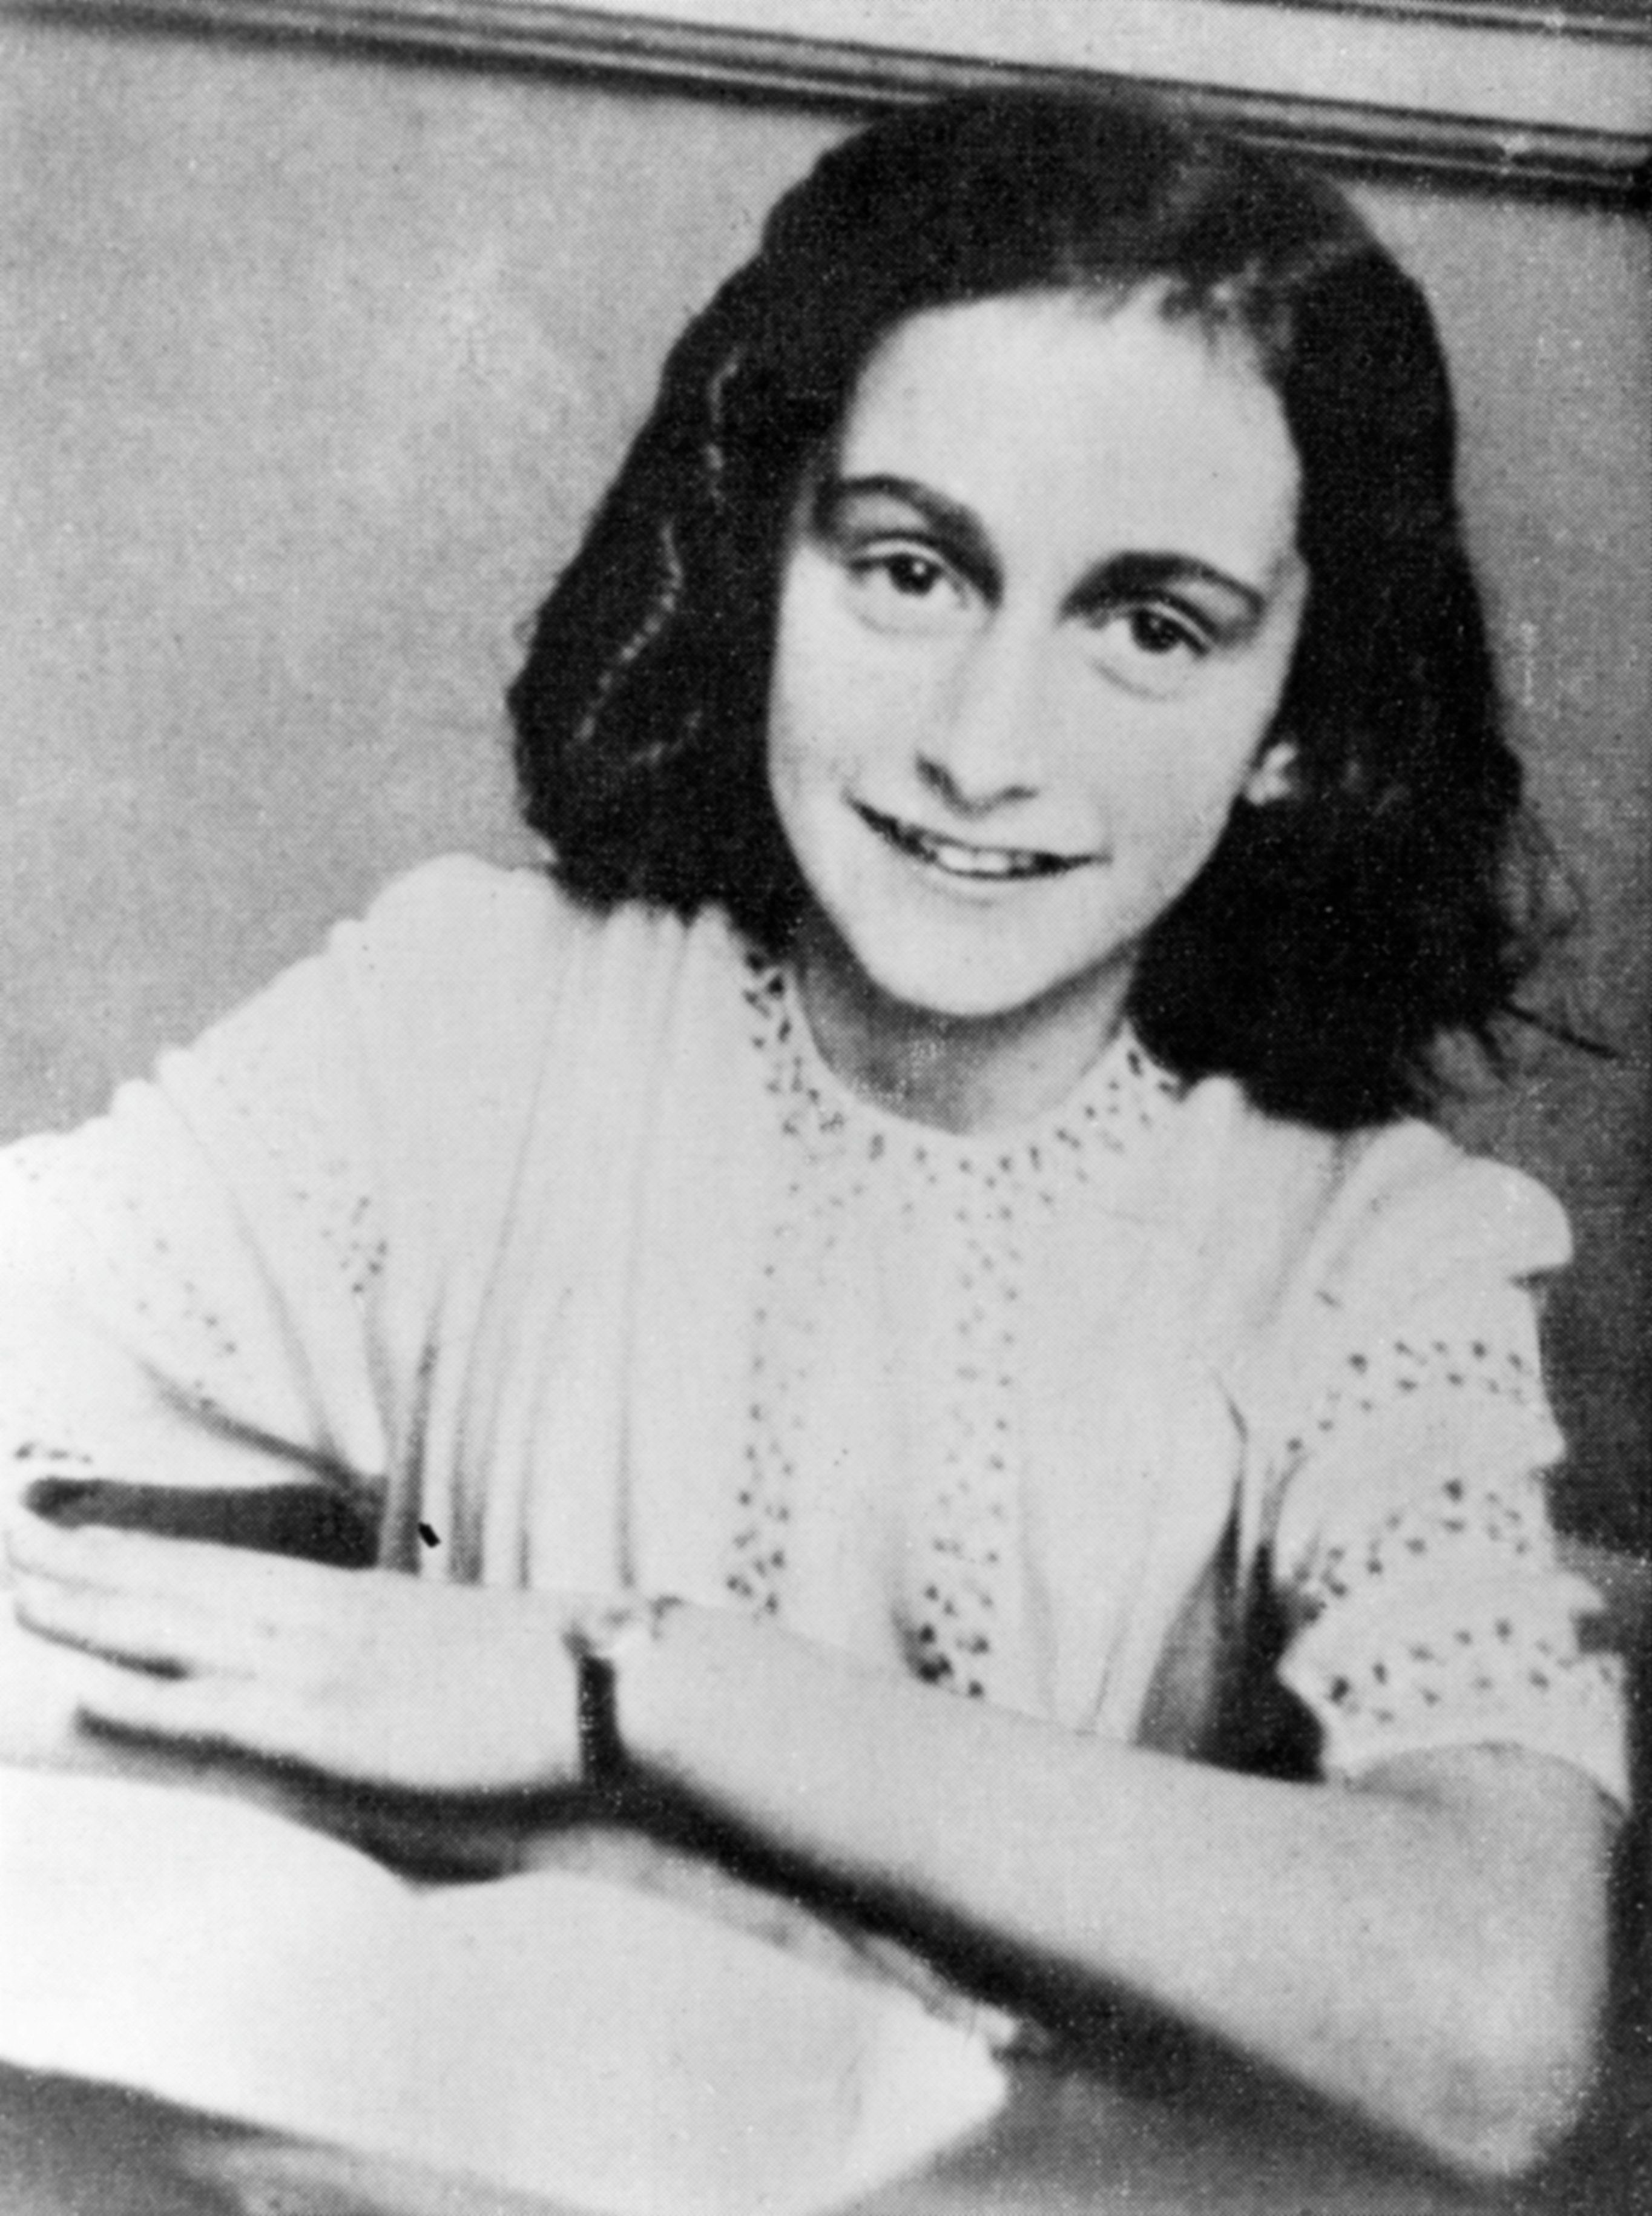 Anne Frank wrote about sexual education, prostitutes and 'dirty' jokesin her diary, something that researchers say&nbsp